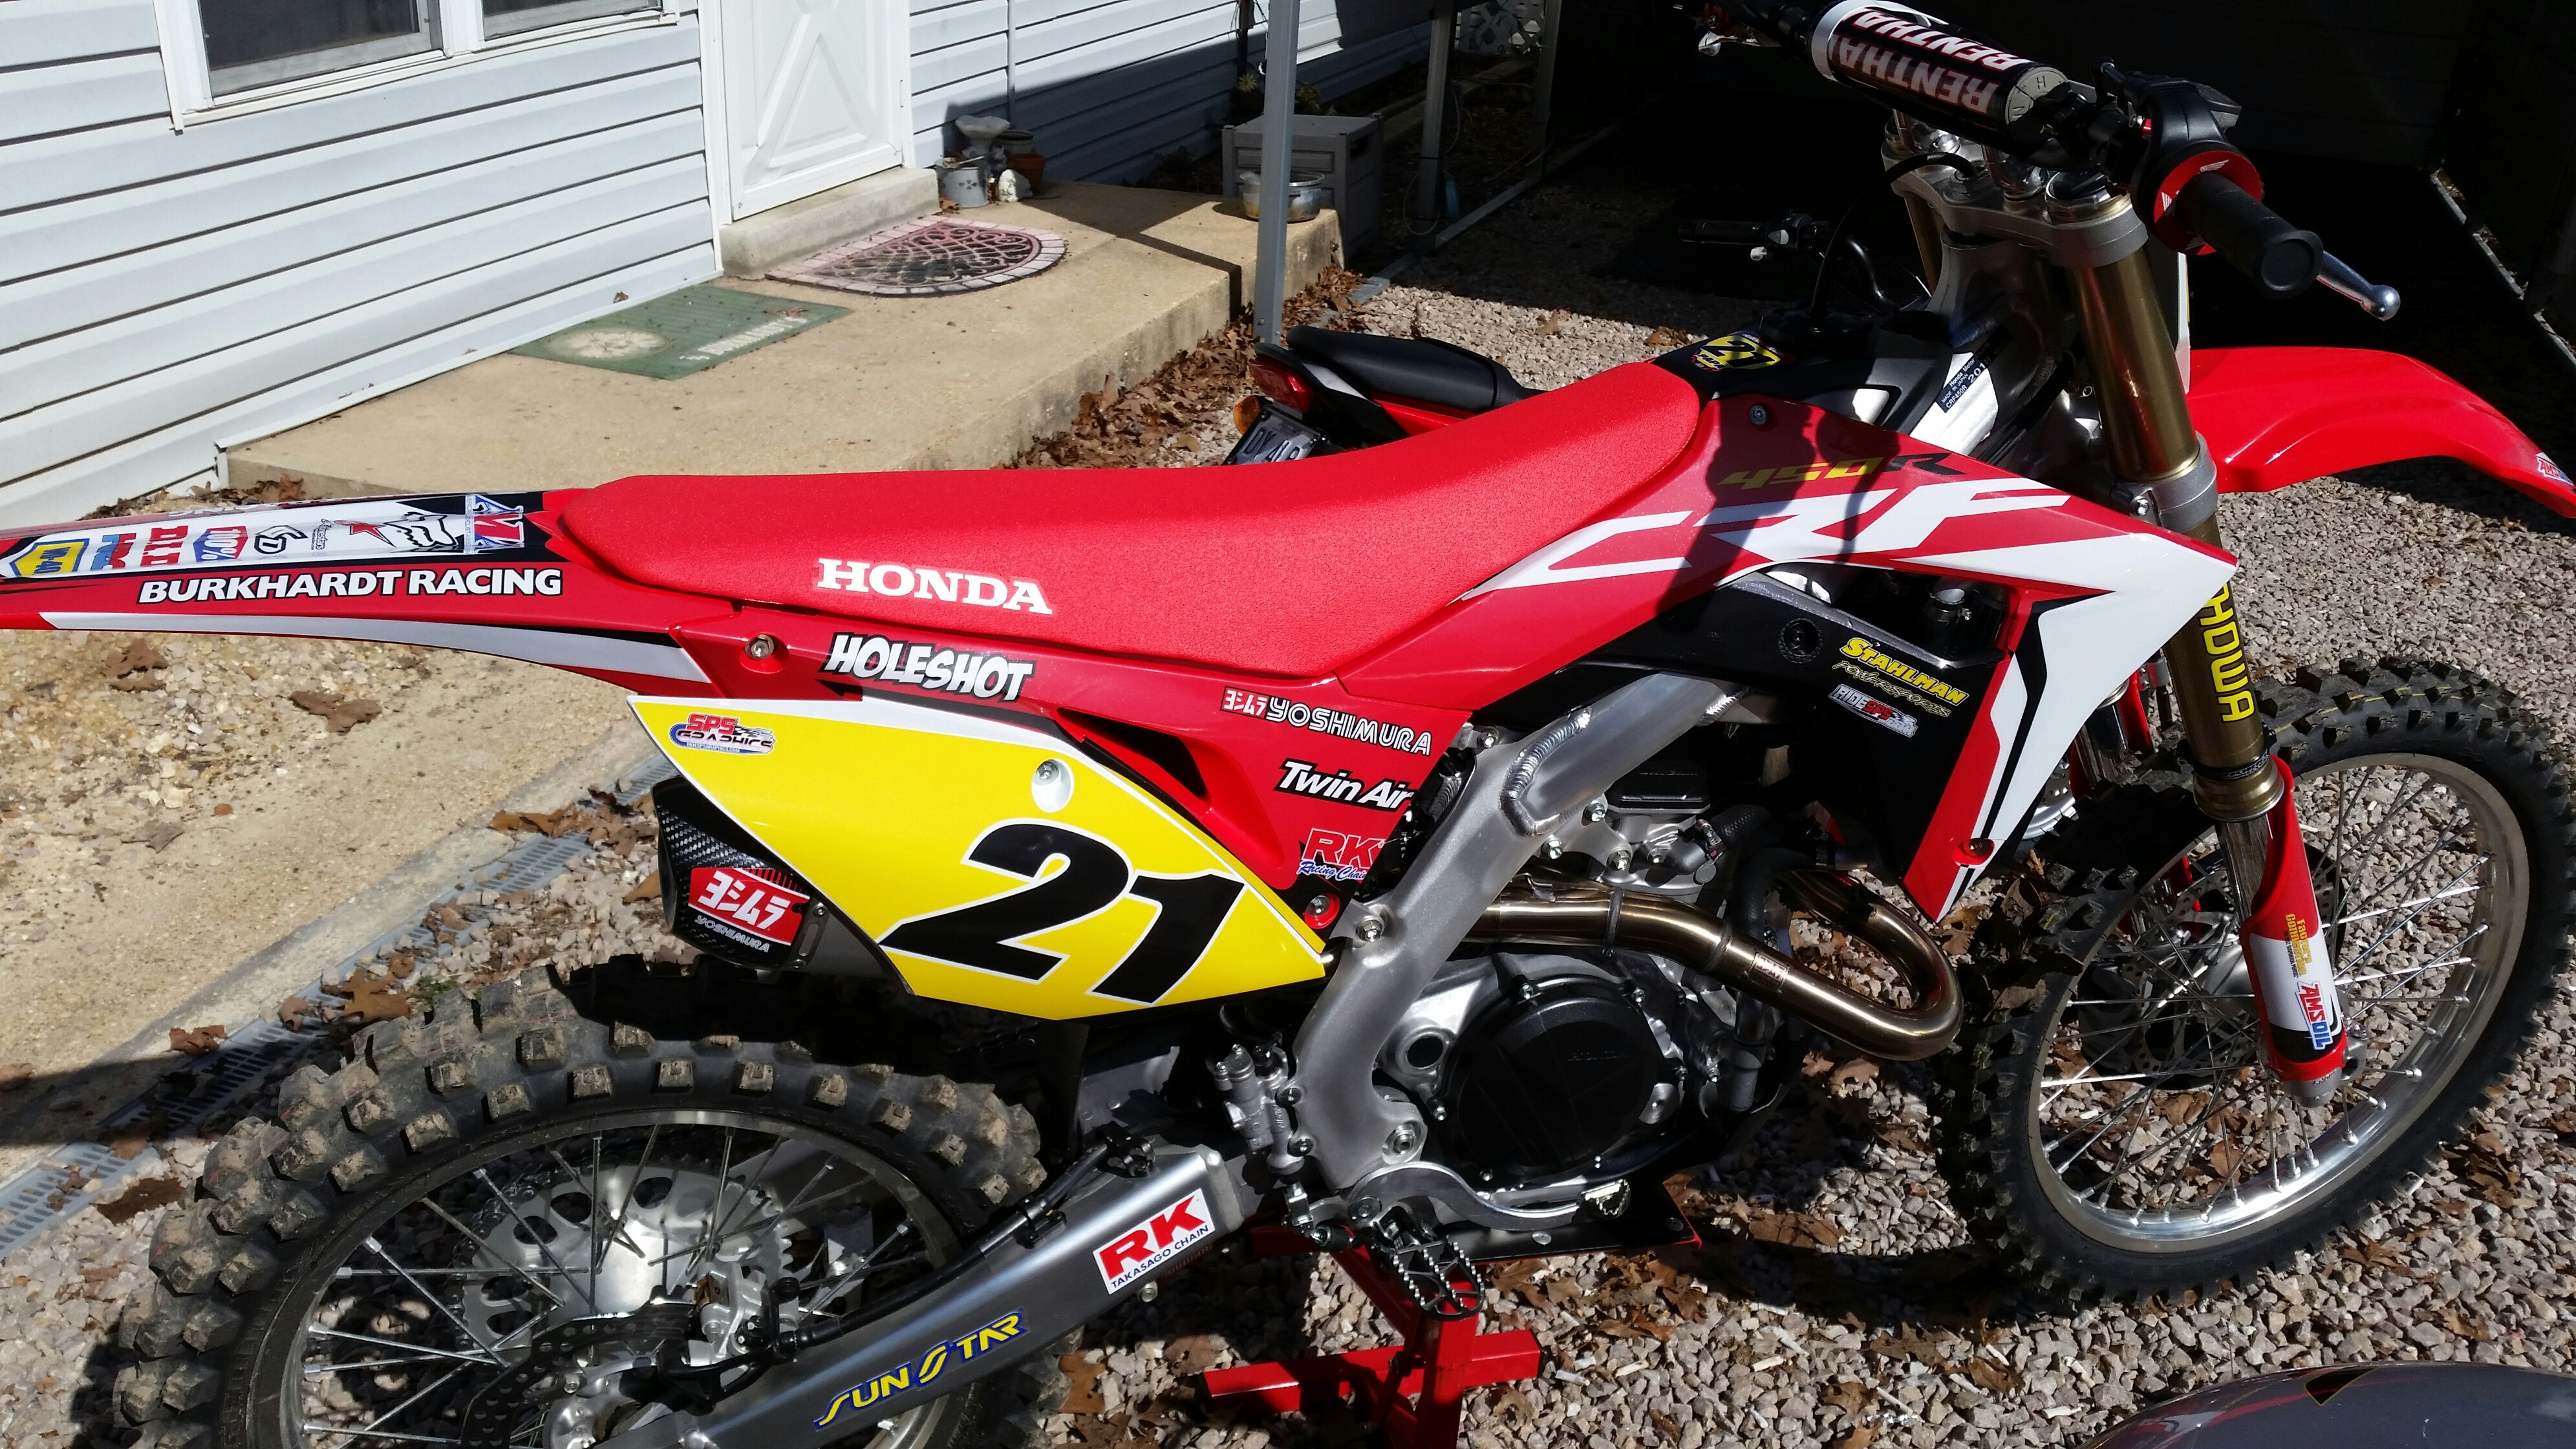 2018 CRF450R - Moto-Related - Motocross Forums / Message Boards - Vital MX